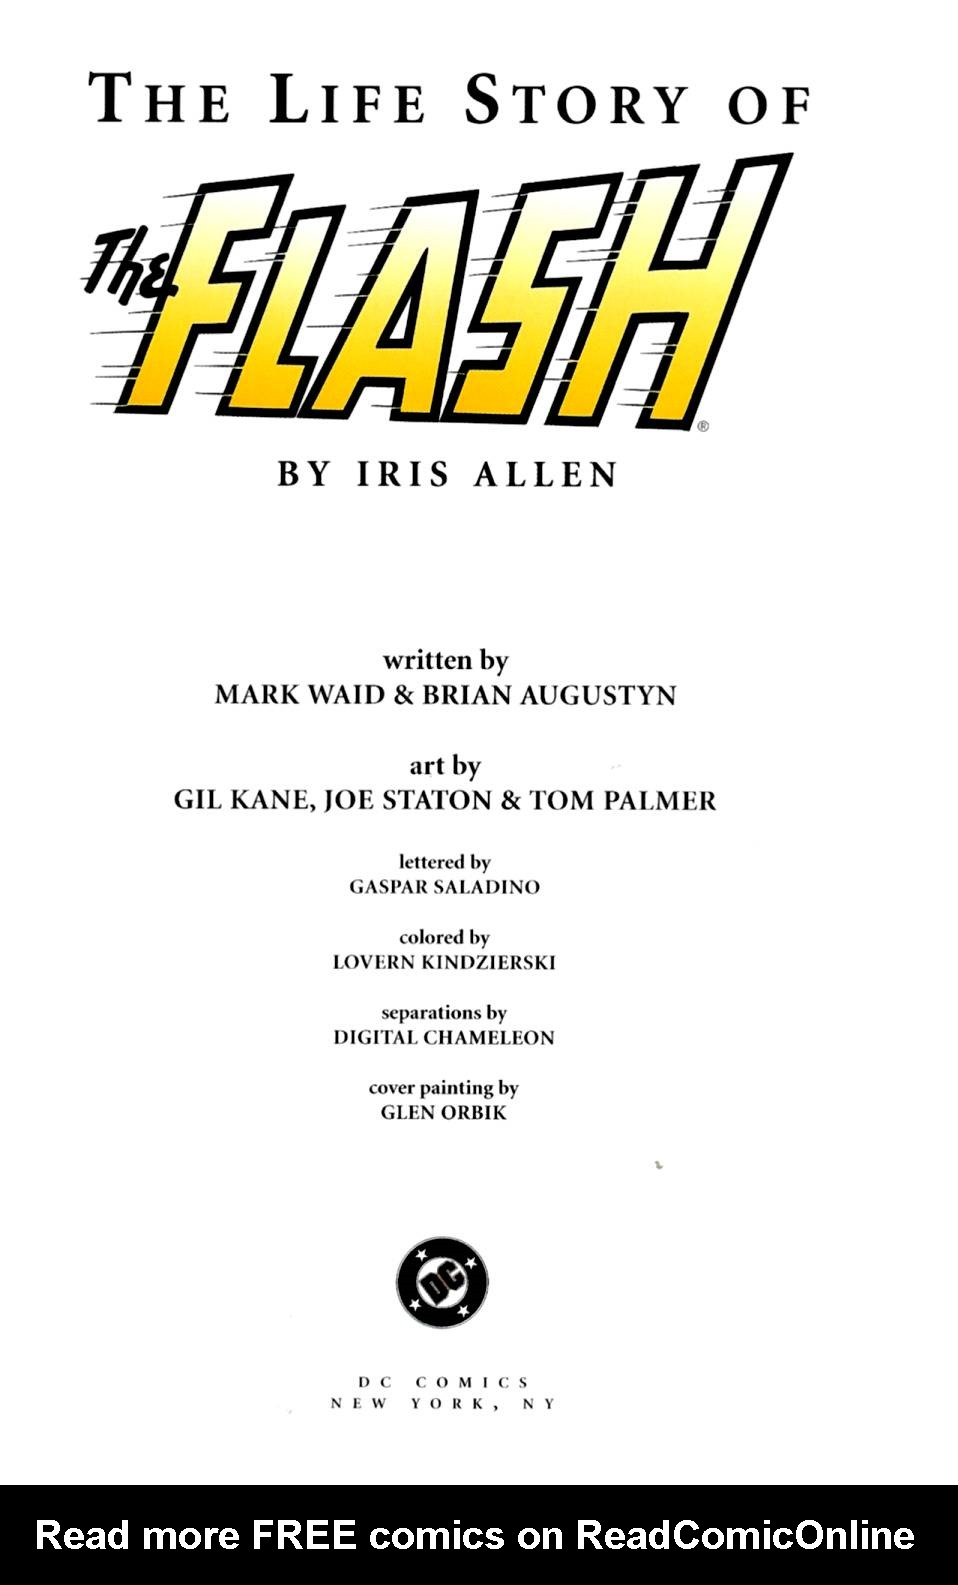 Read online The Life Story of the Flash comic -  Issue # Full - 3